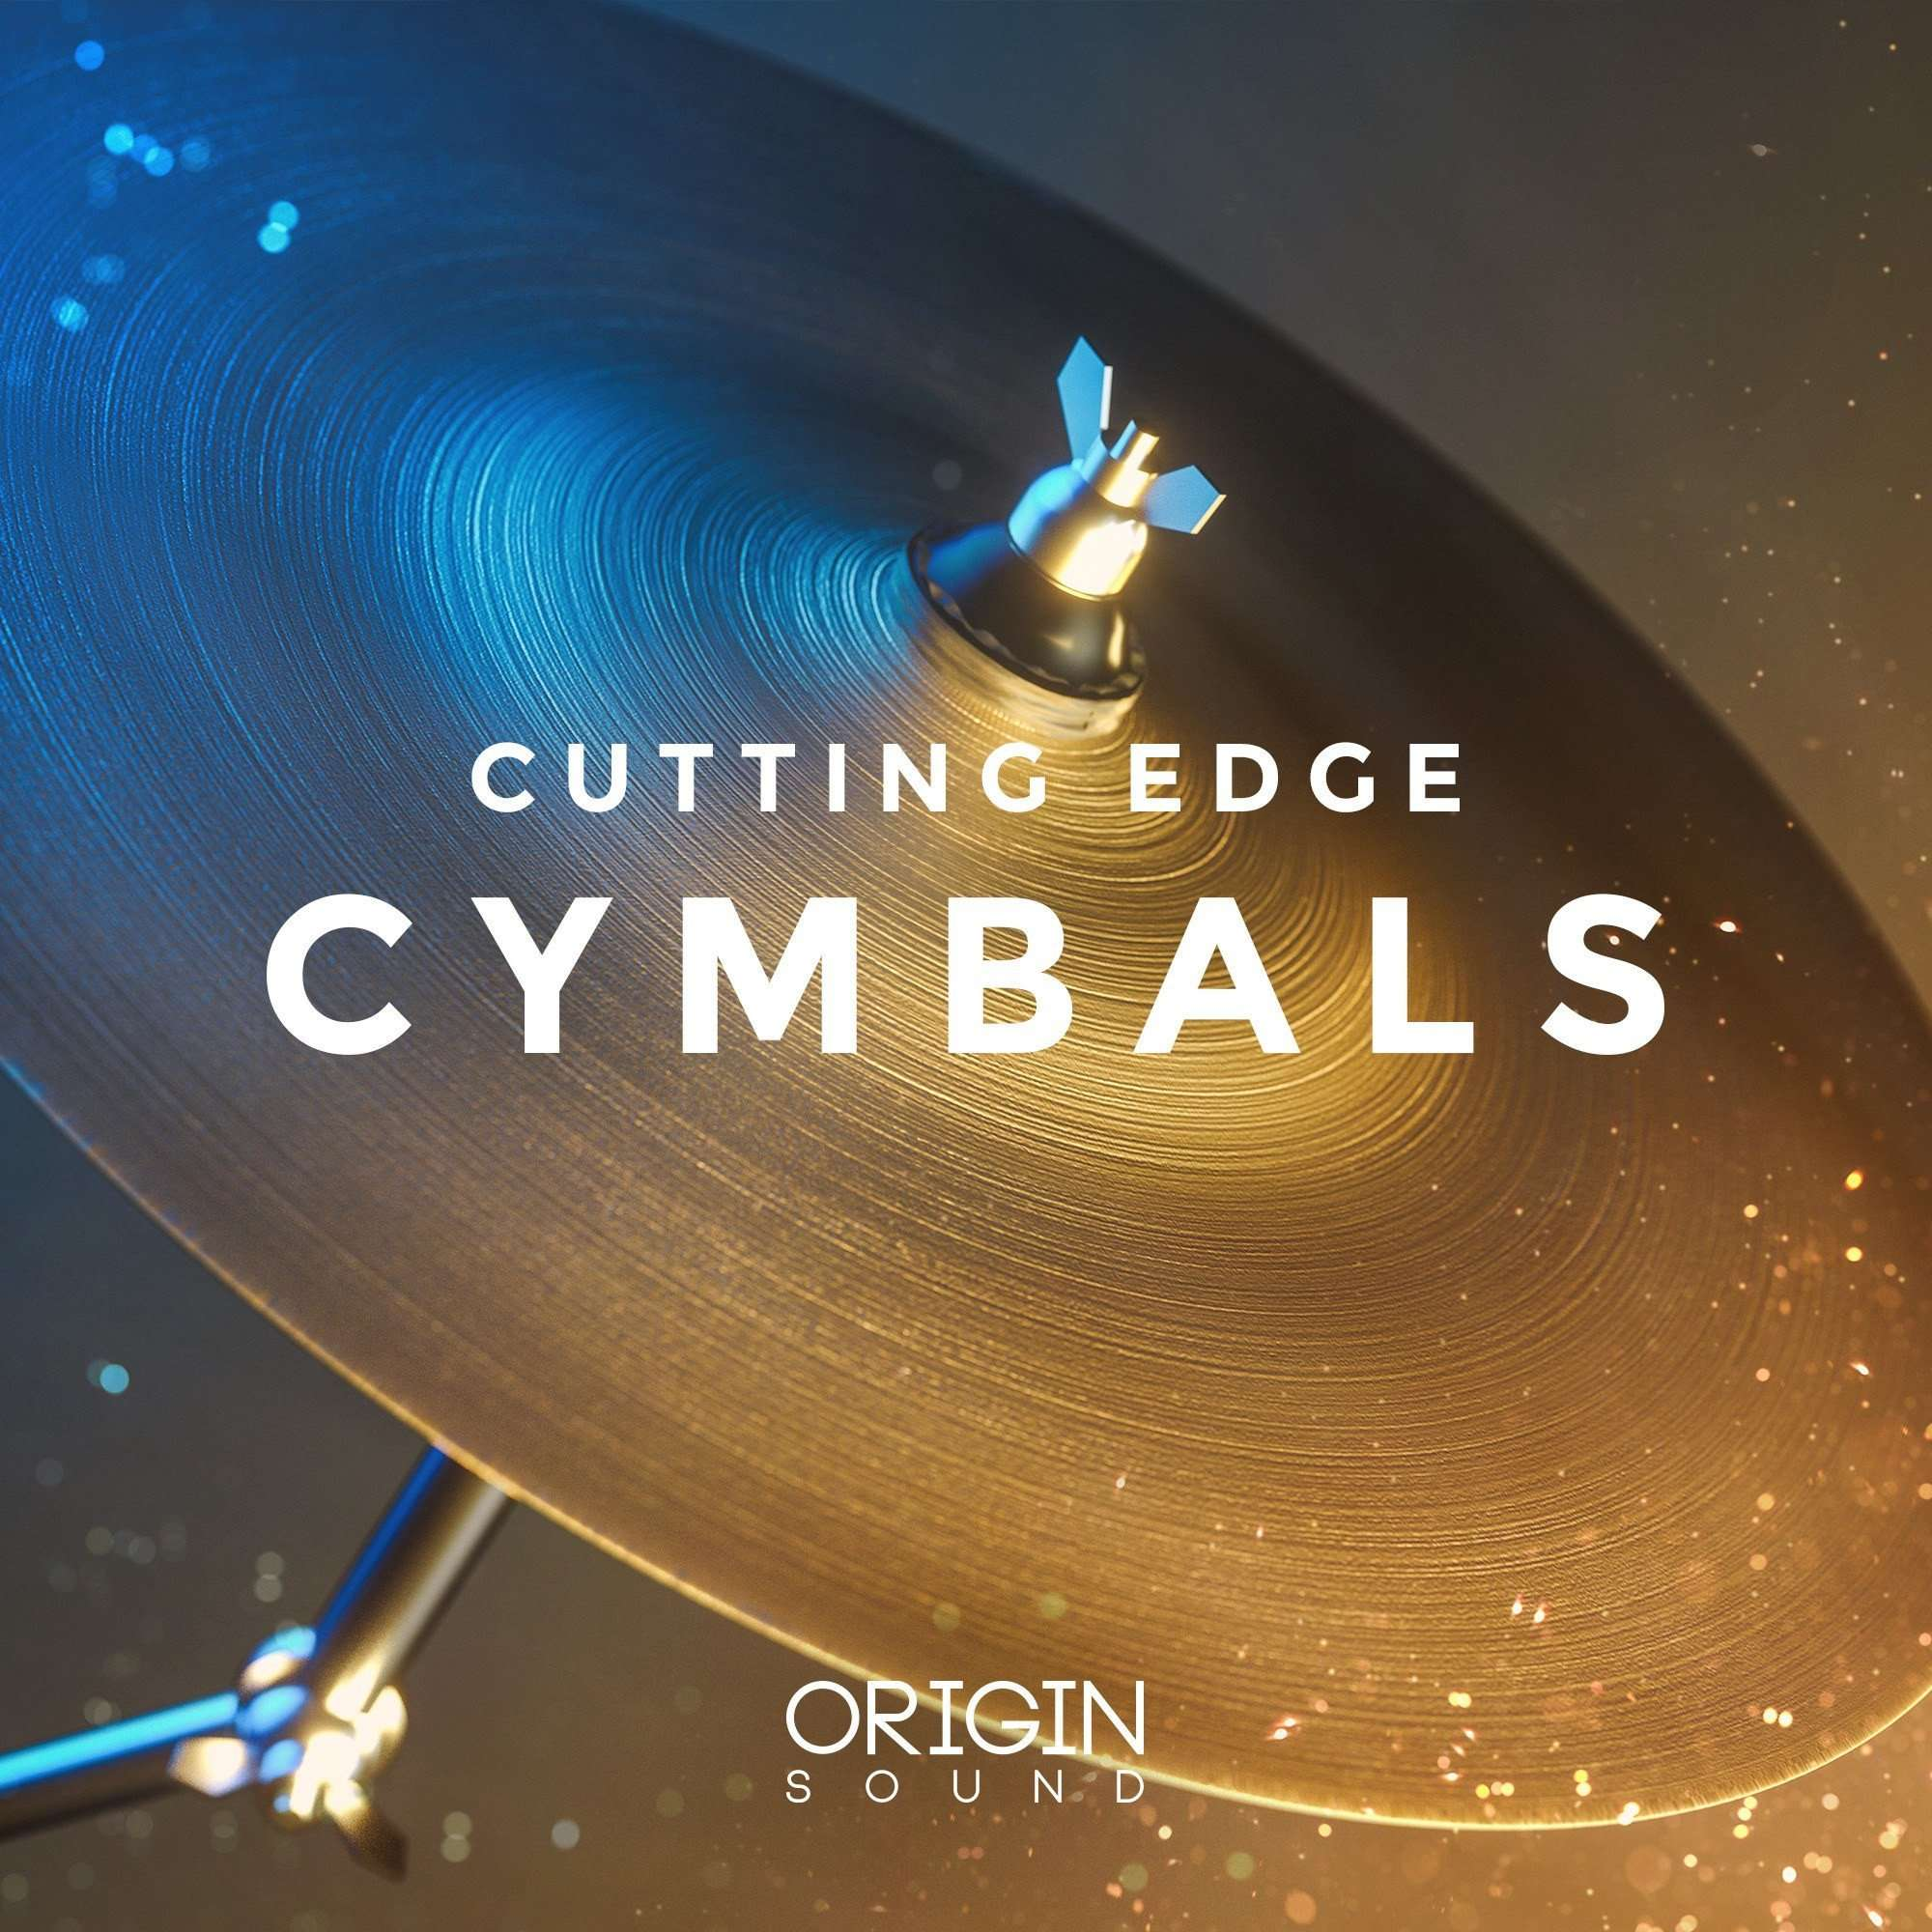 Cutting Edge Cymbals - Vol 1 Sample Pack, Origin Sound, Origin Sound - Origin Sound samples royalty free fundamental ambience pack edm electronic ableton live fl studio logic pro piano drums keys bass chords midi melodies IDM organic downtempo tisoki presets elysian utopia free samples